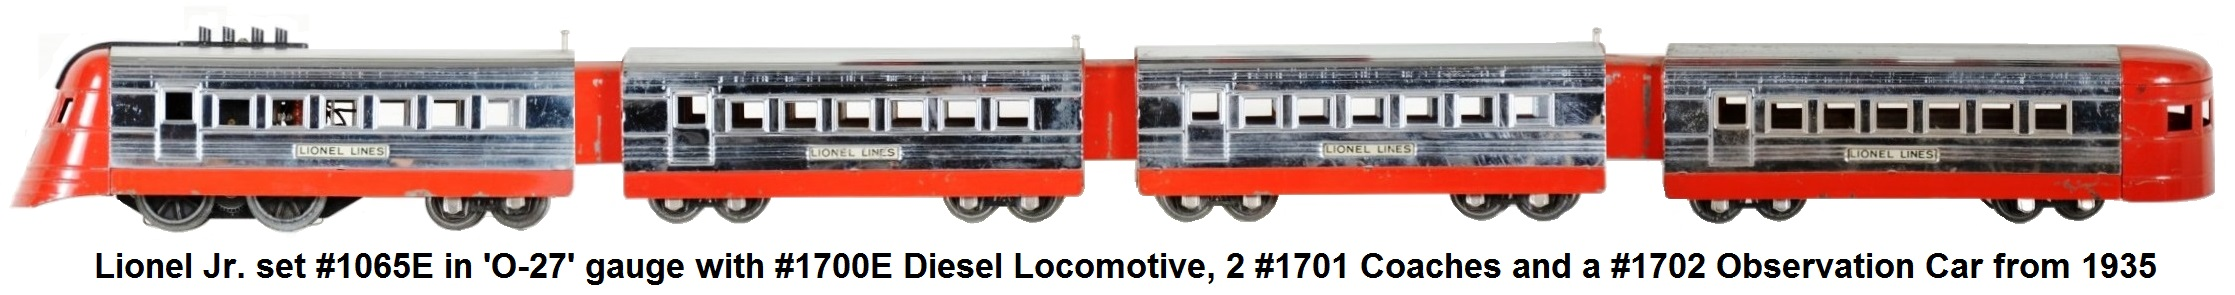 Lionel 'O-27' gauge #1065 Junior streamliner set from 1935 with #1700E diesel 2 #1701 coaches and #1702 observation